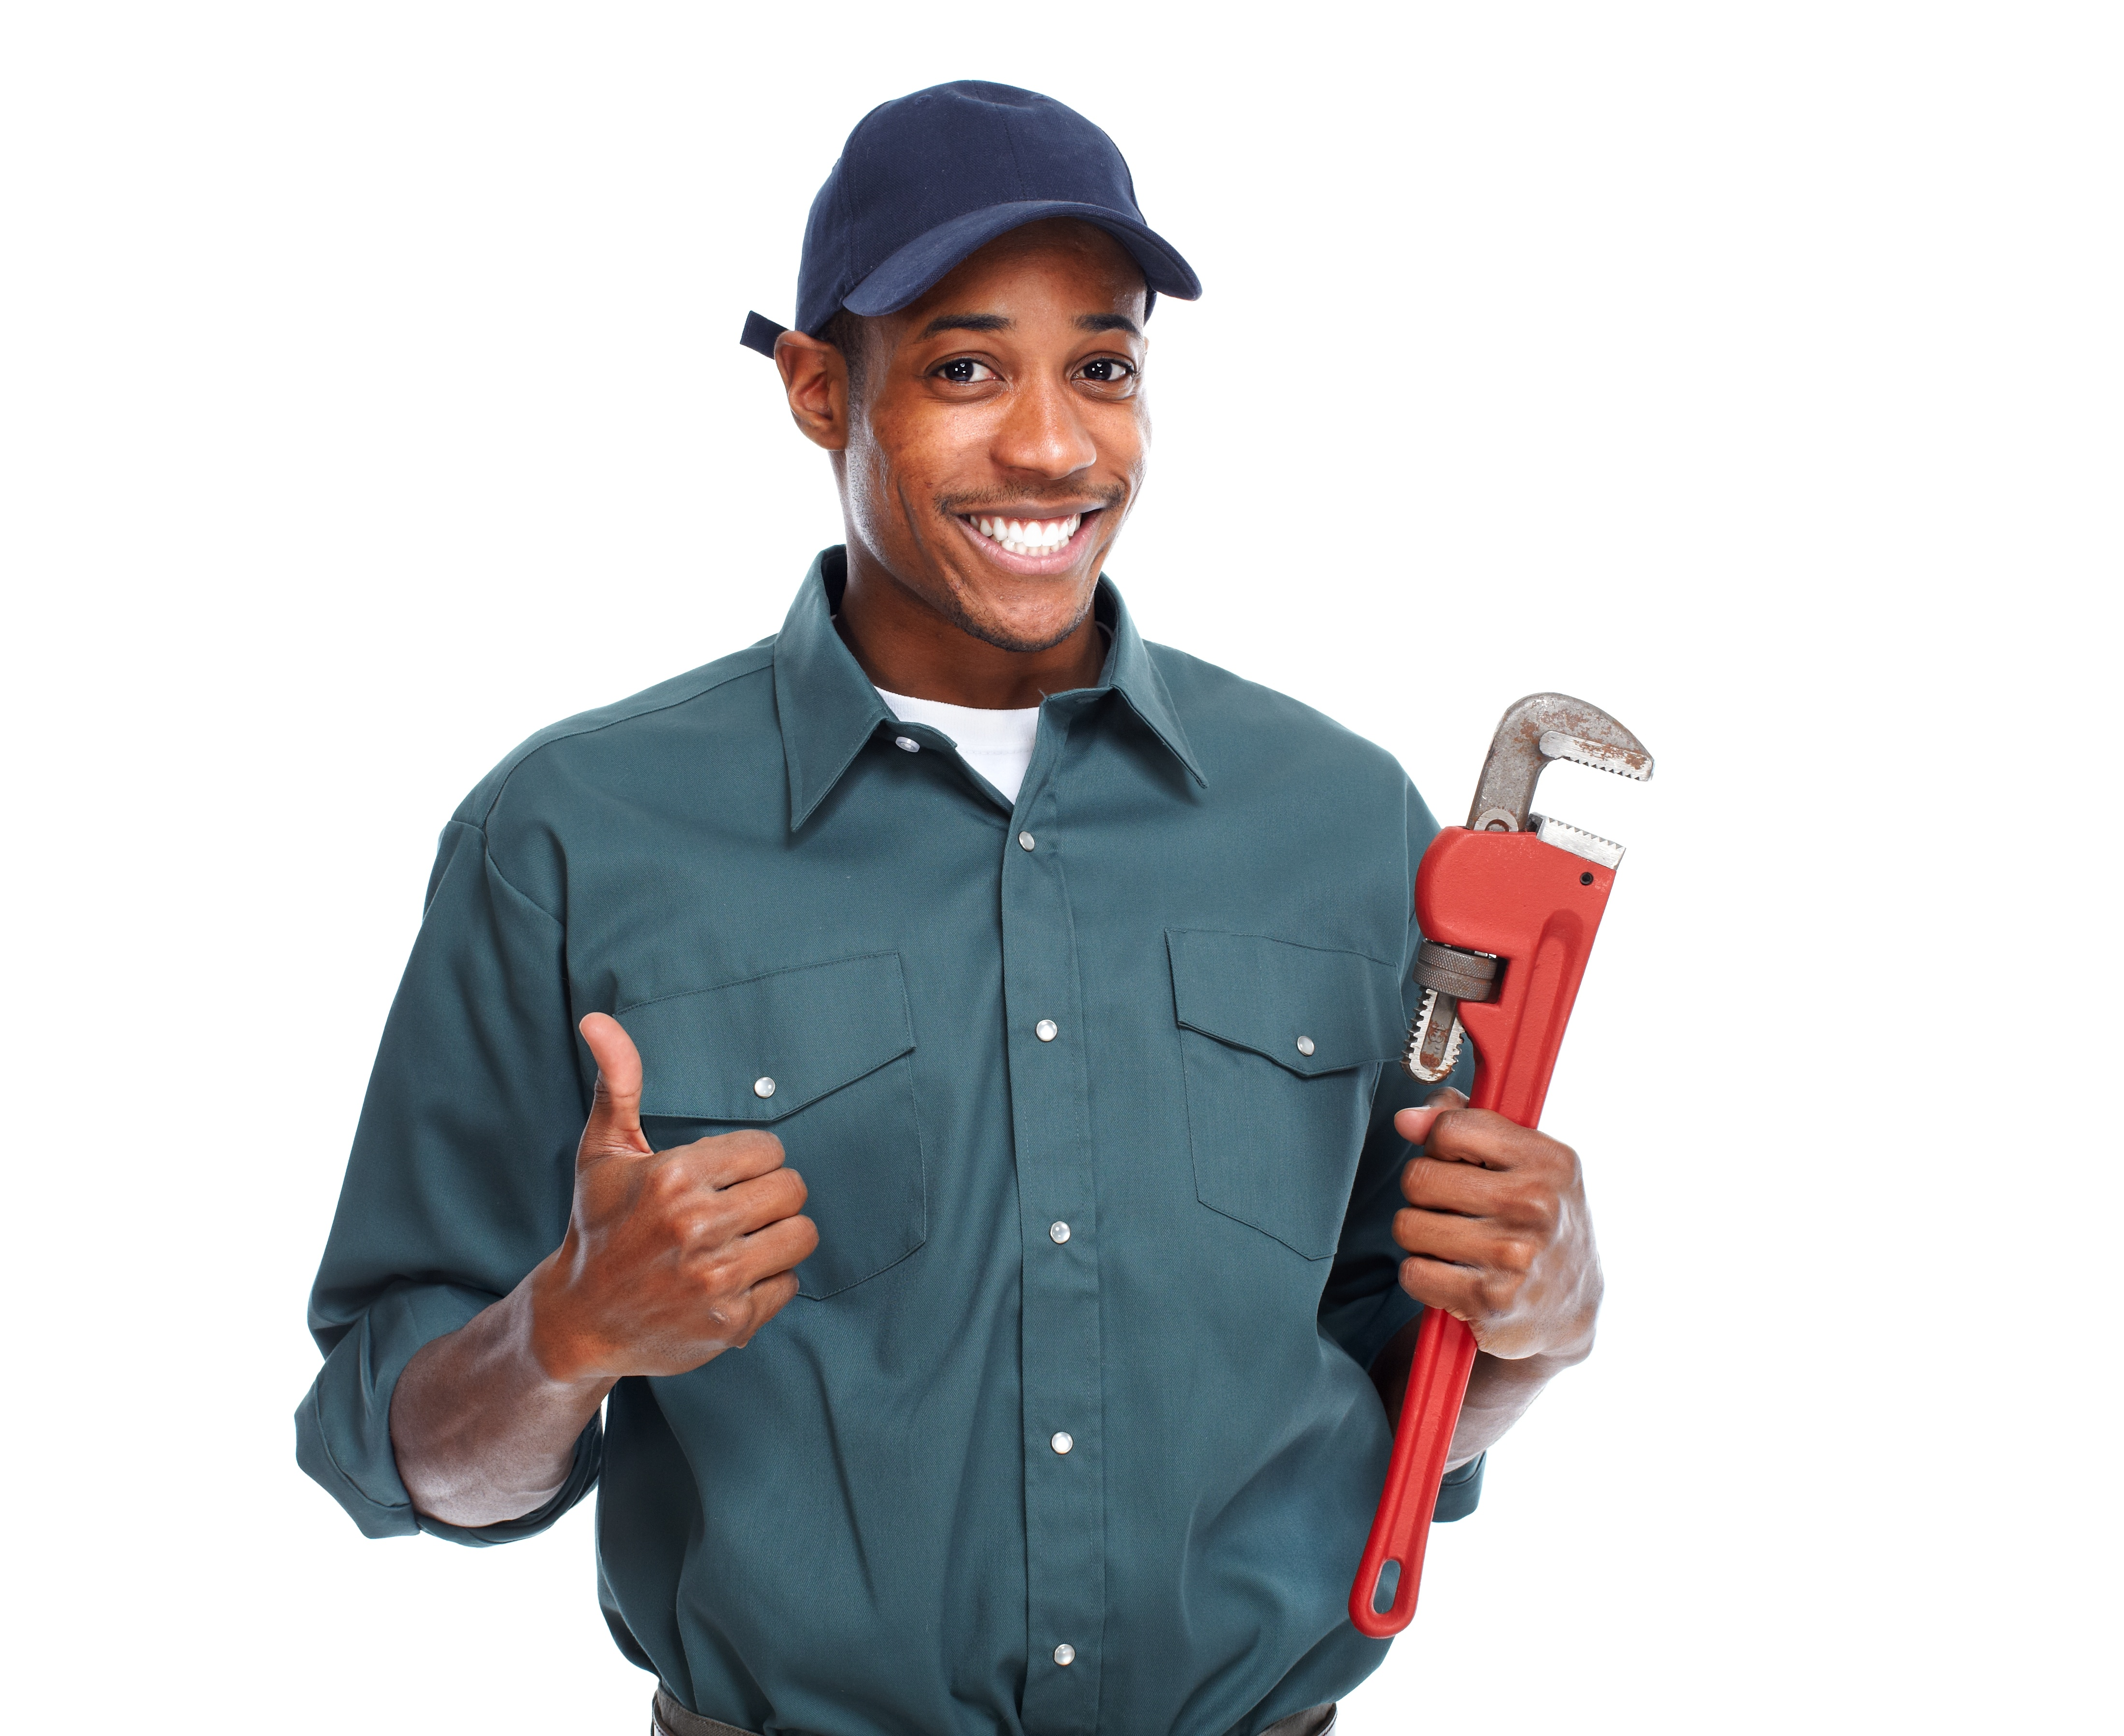 Careers Position Available At Narrow Path Plumbing